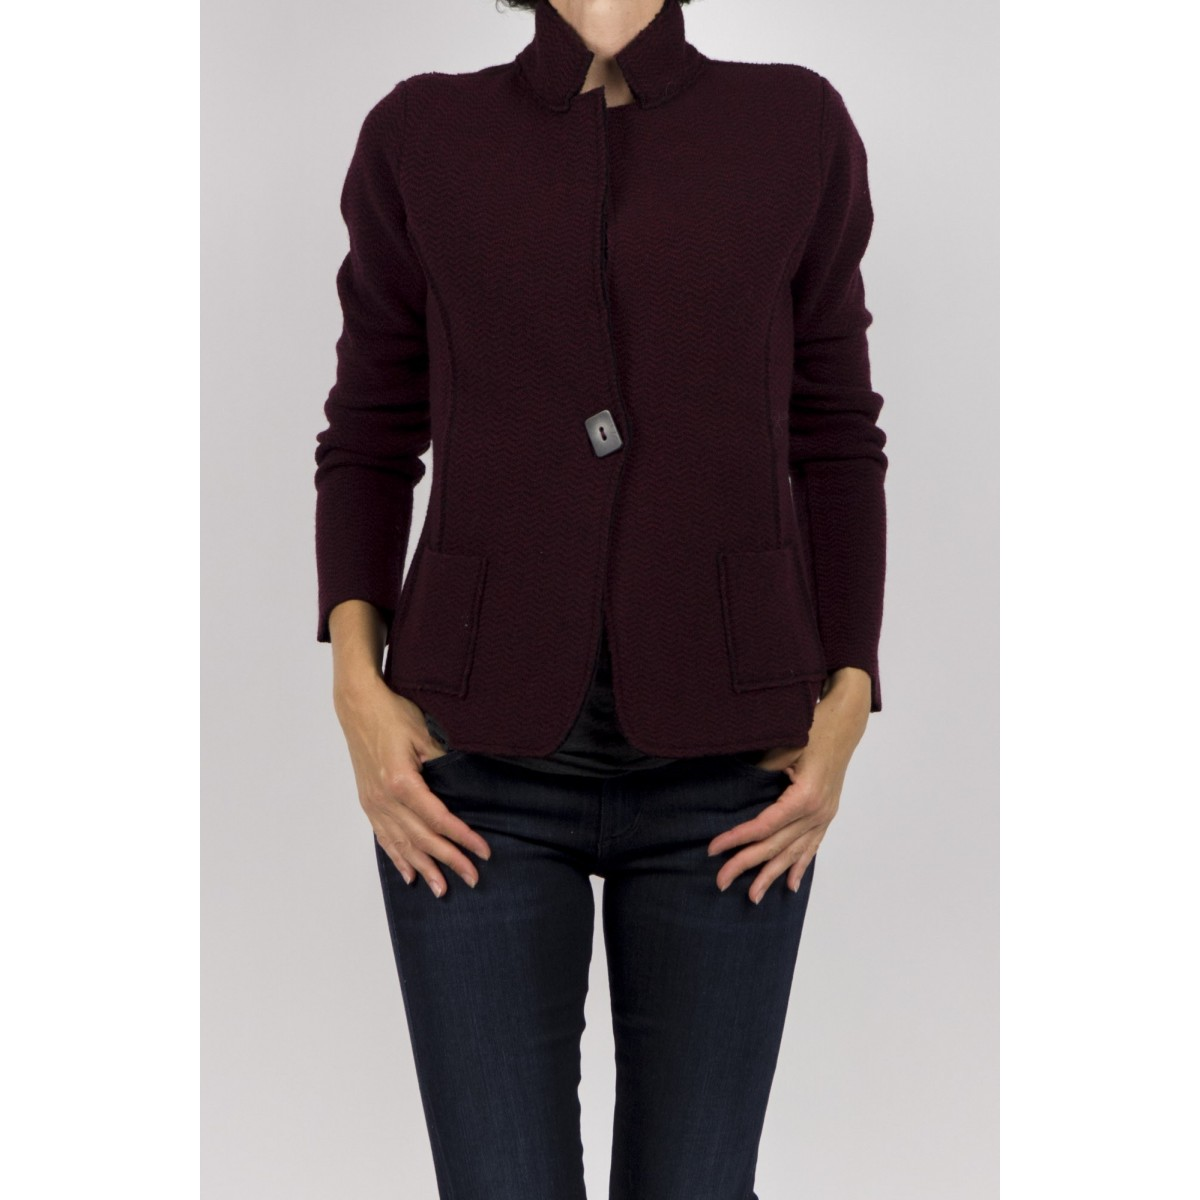 Wool Jacket Kangra Woman- 7550/57 13 - Nero